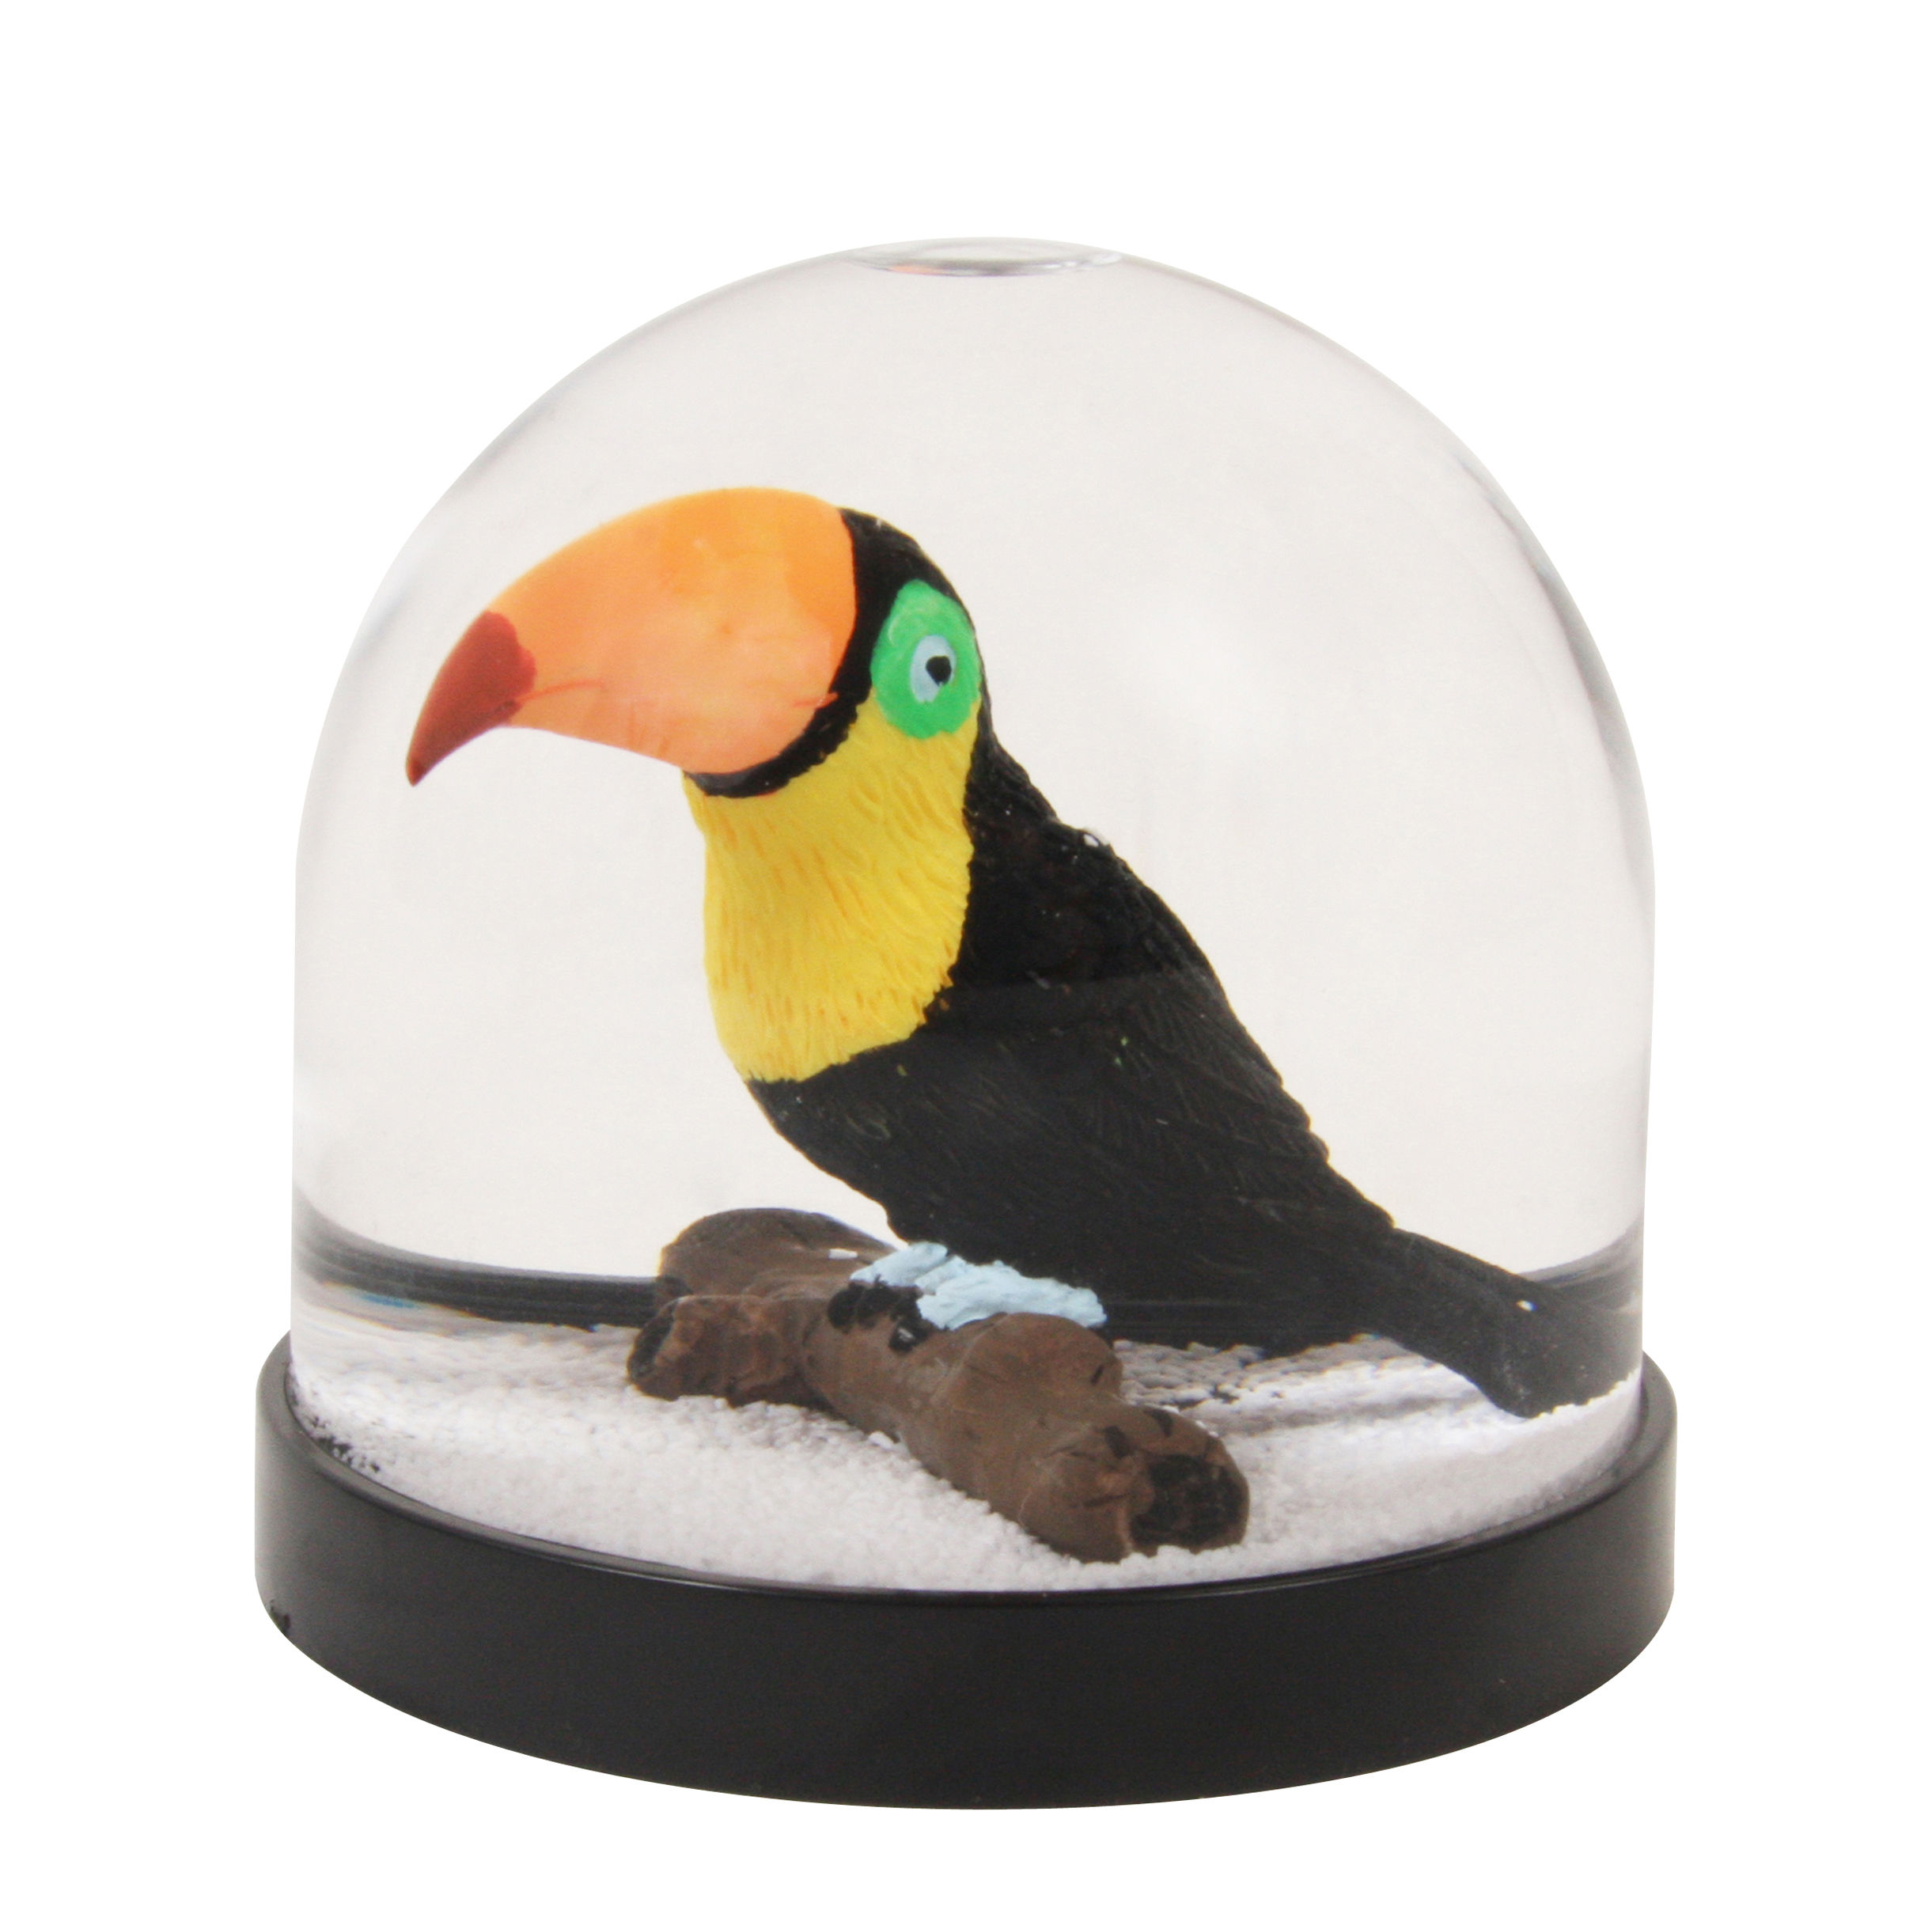 Decoration - Children's Home Accessories - Snowball - Toucan by & klevering - Toucan - Plastic